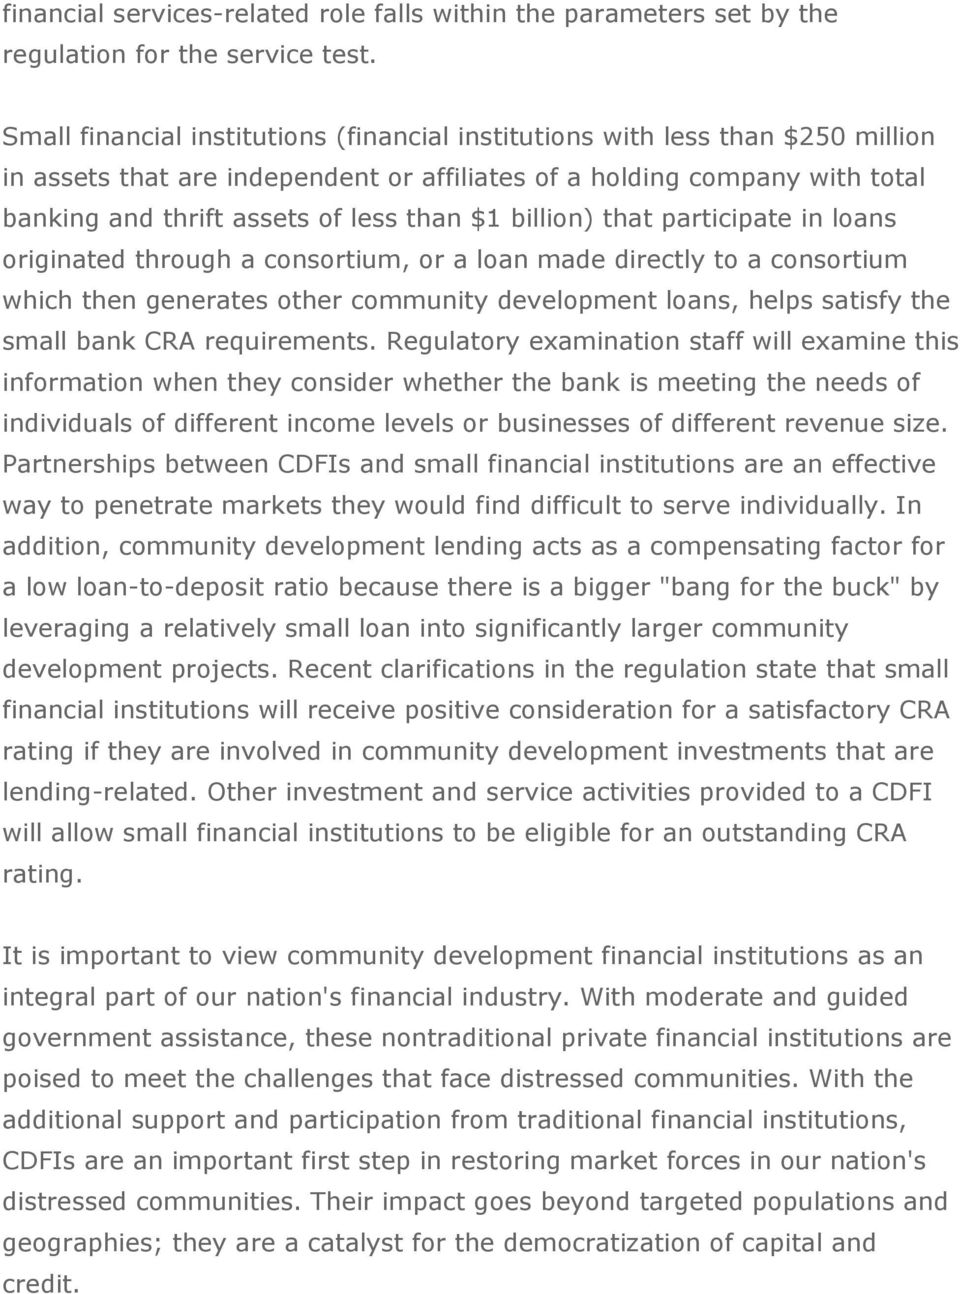 billion) that participate in loans originated through a consortium, or a loan made directly to a consortium which then generates other community development loans, helps satisfy the small bank CRA